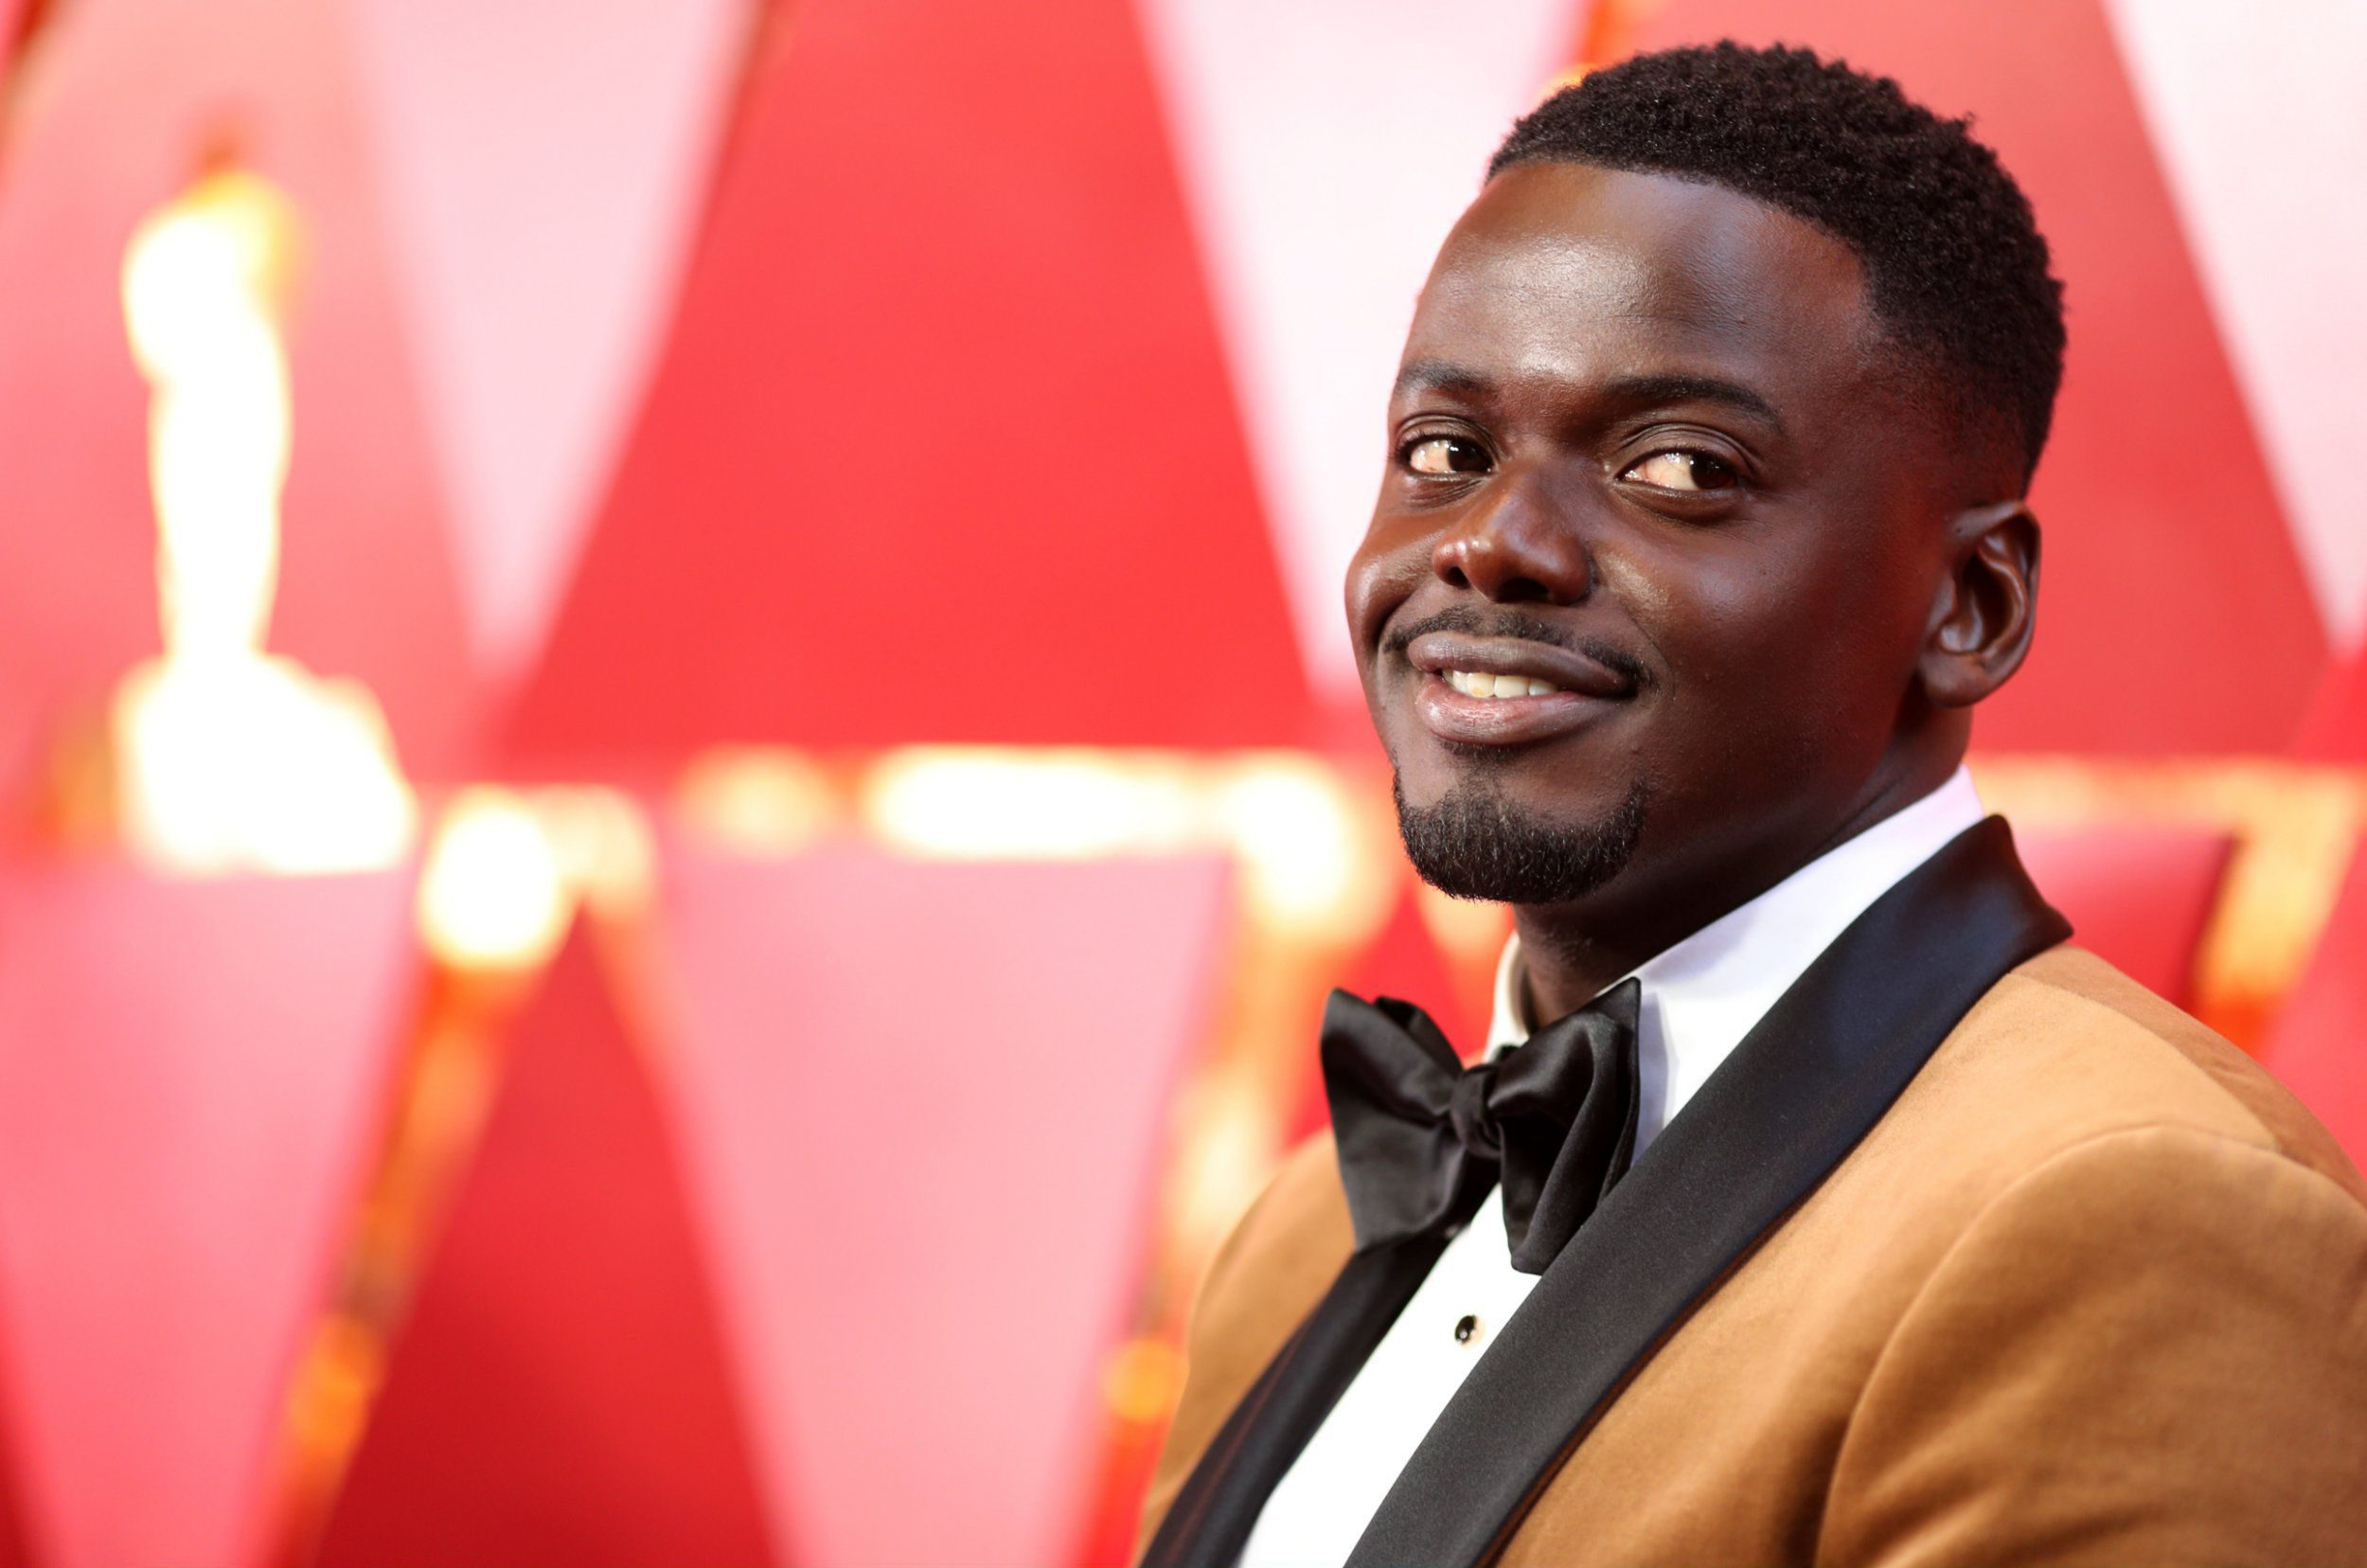 HOLLYWOOD, CA - MARCH 04: Daniel Kaluuya attends the 90th Annual Academy Awards at Hollywood & Highland Center on March 4, 2018 in Hollywood, California. (Photo by Christopher Polk/Getty Images)